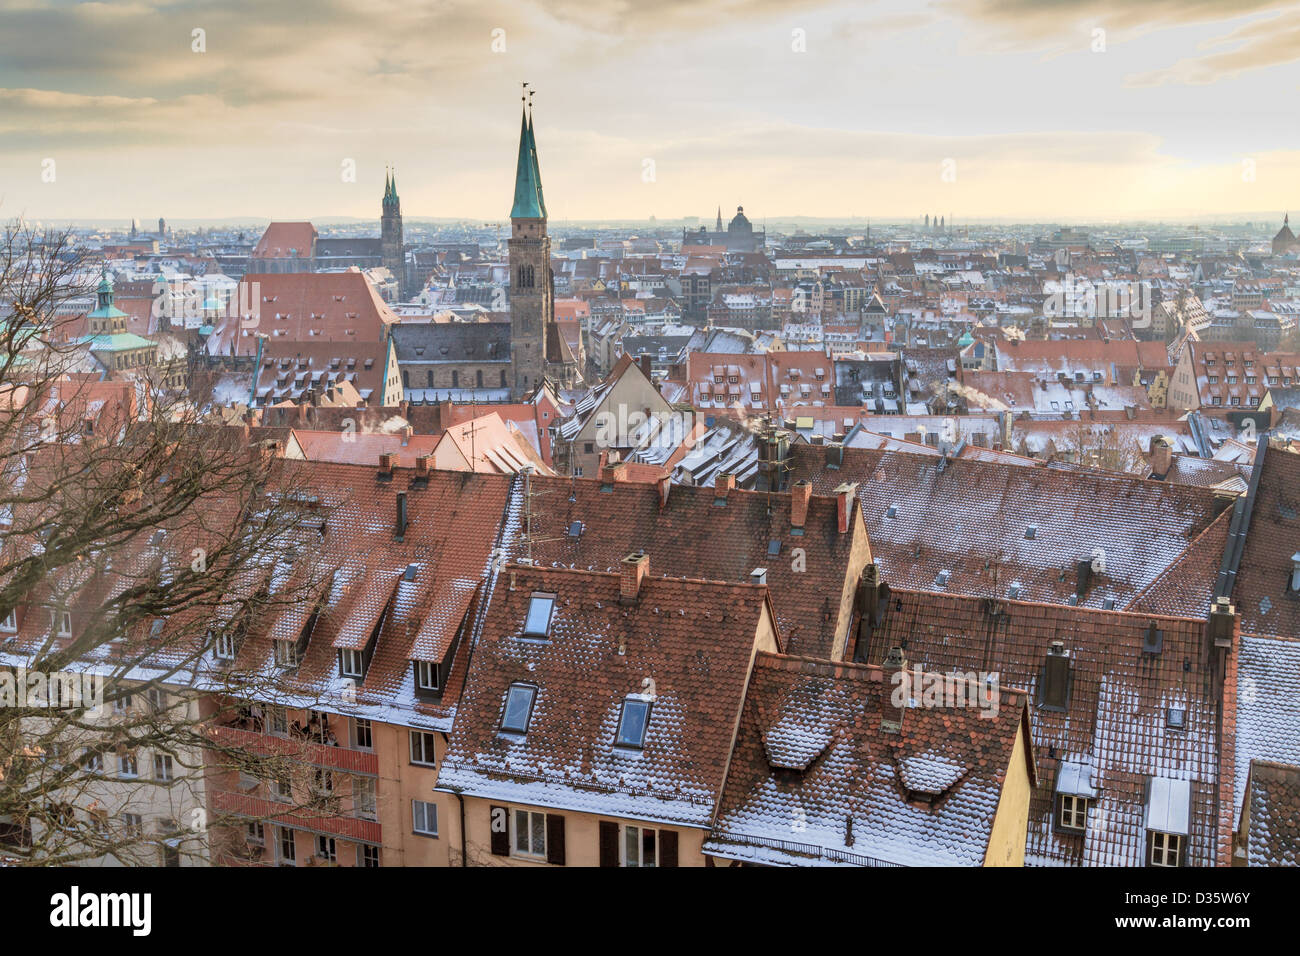 Nurember City View during time of famous Christmas market in winter - Stock Image